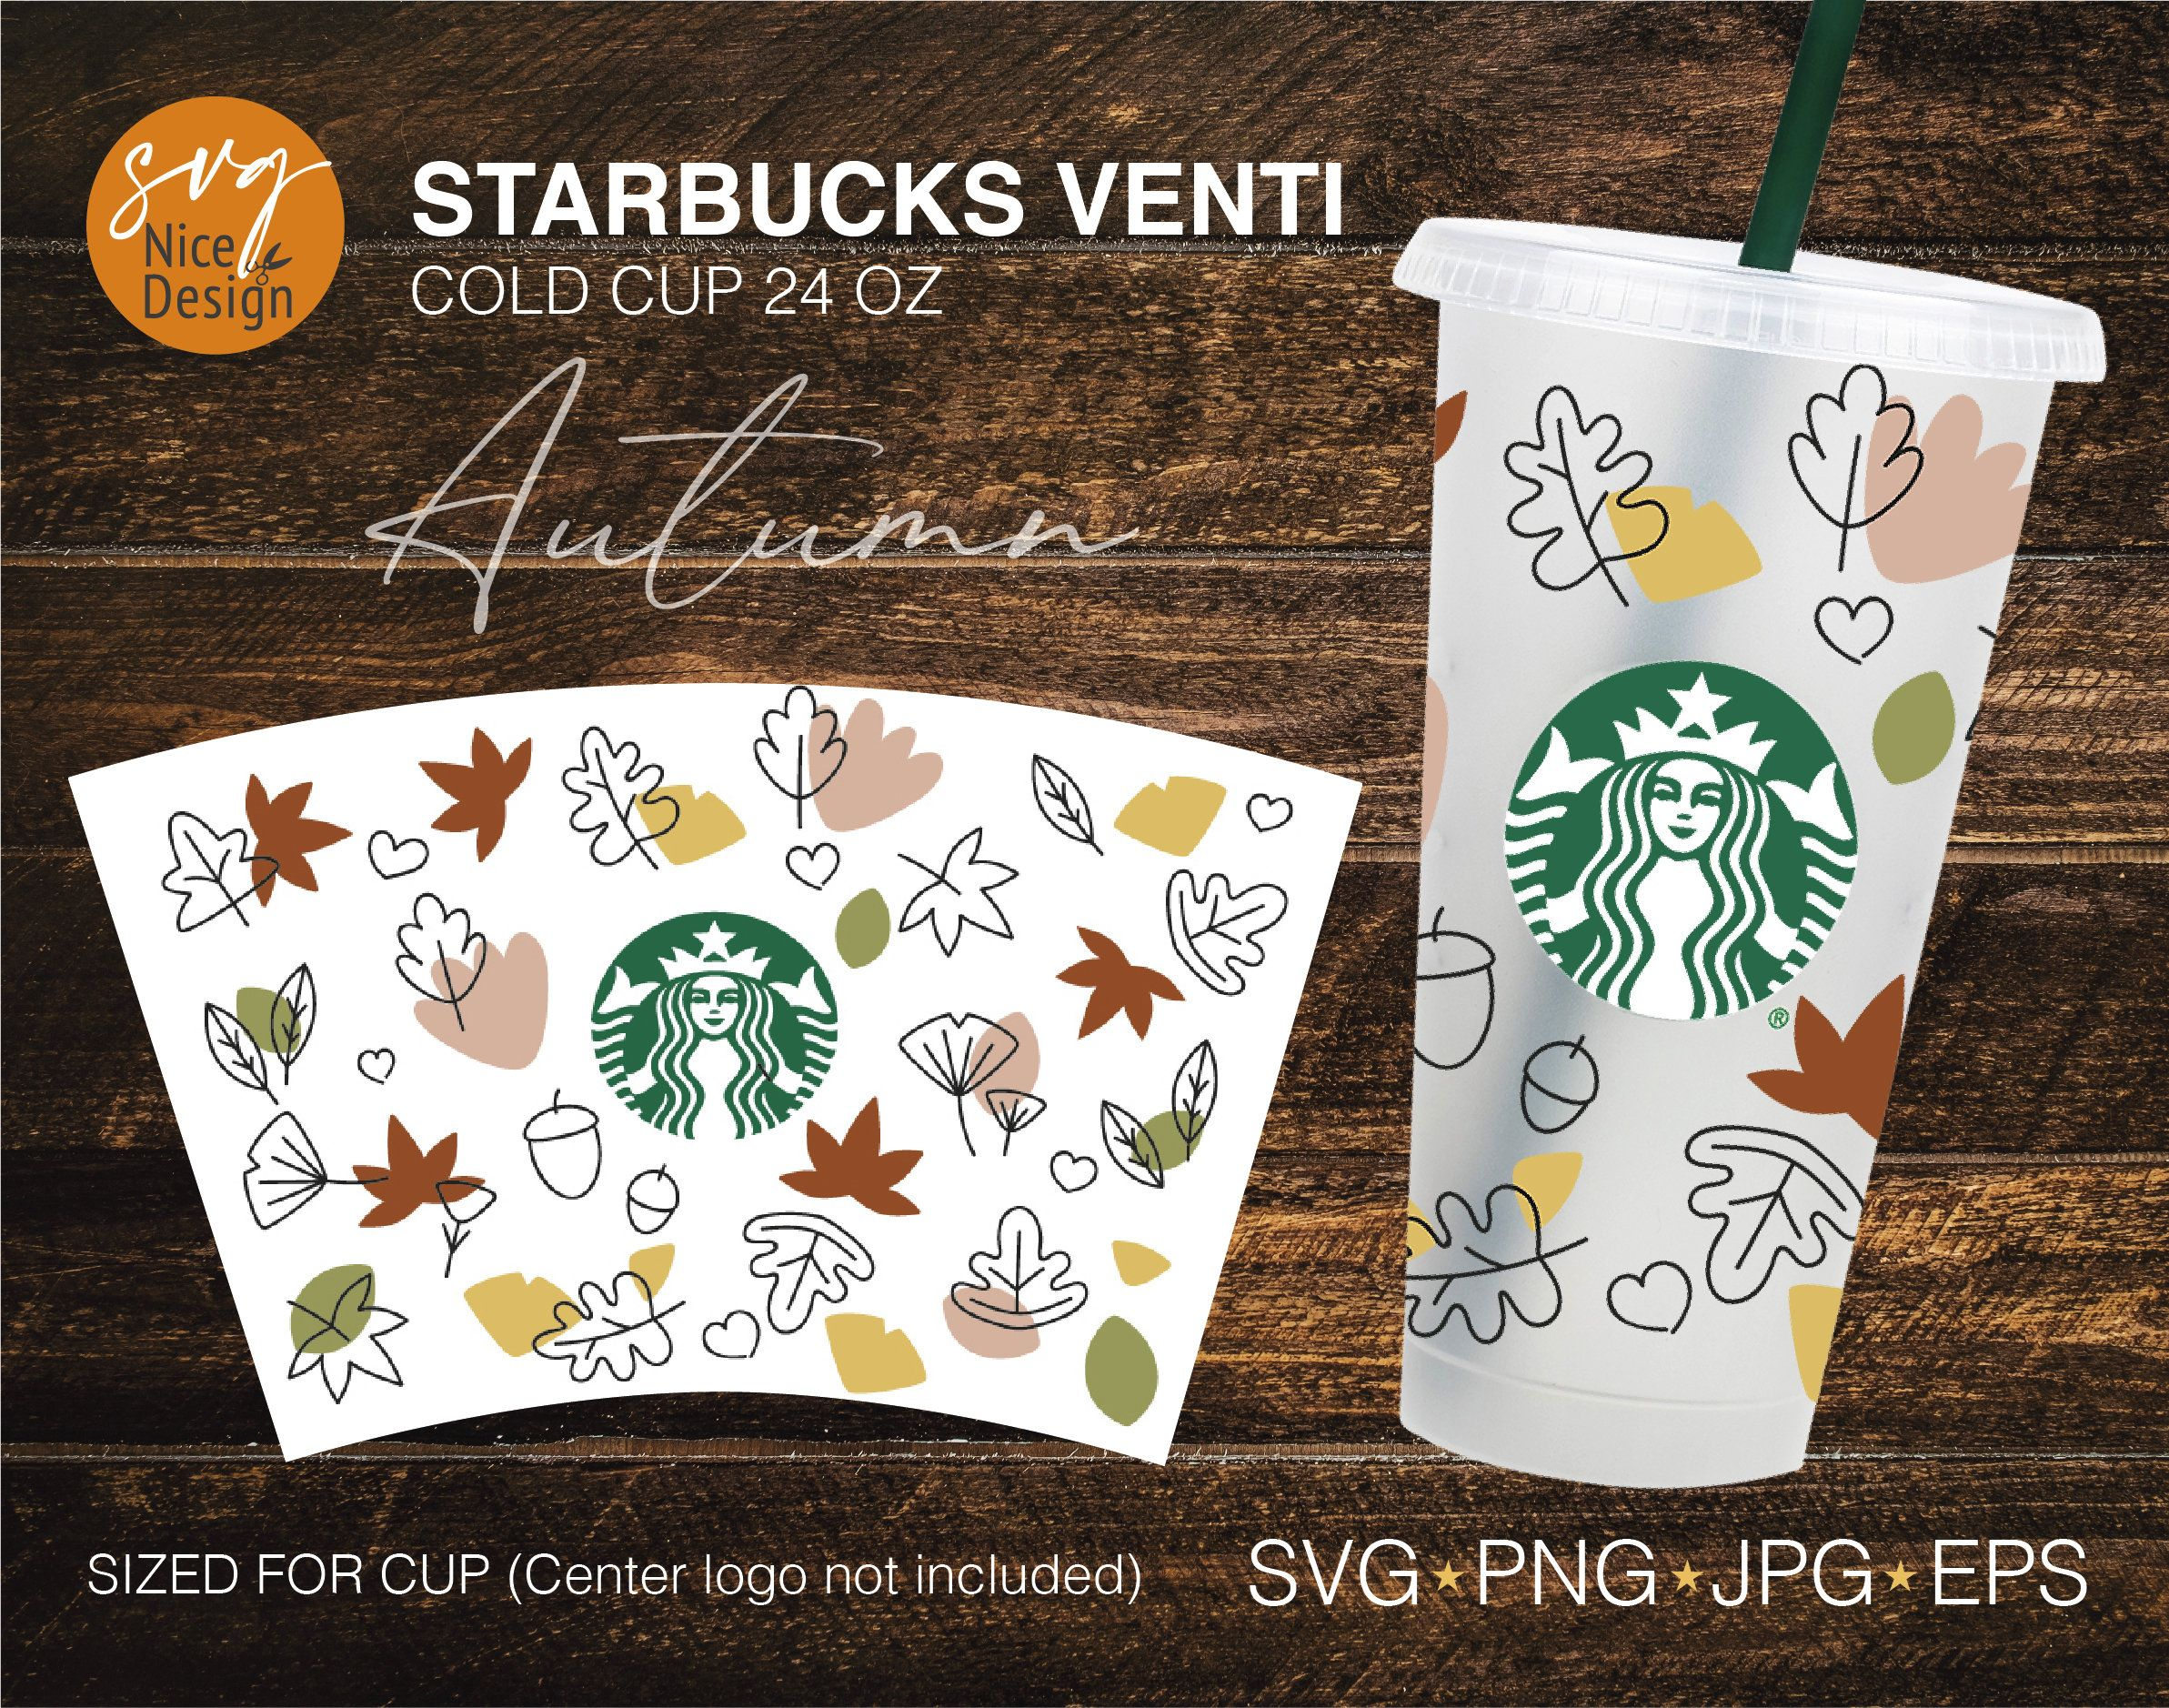 Maple Leaf pattern SVG,Fall Leaves Starbucks Cup svg,For 24oz Venti Cold Cup,DIY Instant Download for Cricut Maple Leaves Starbucks Cup SVG